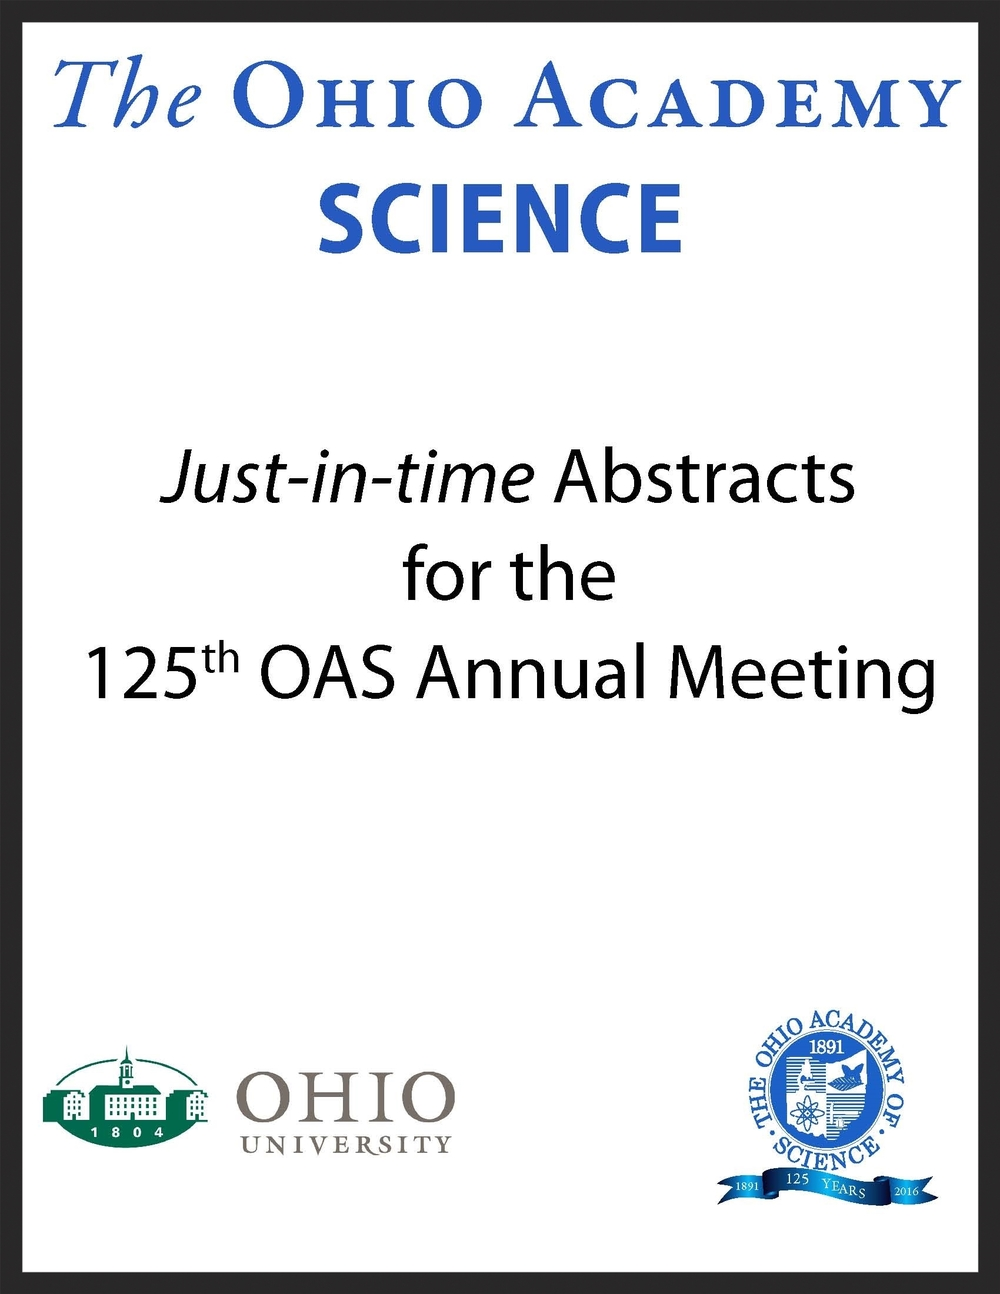 JiT Abstracts Cover.jpg